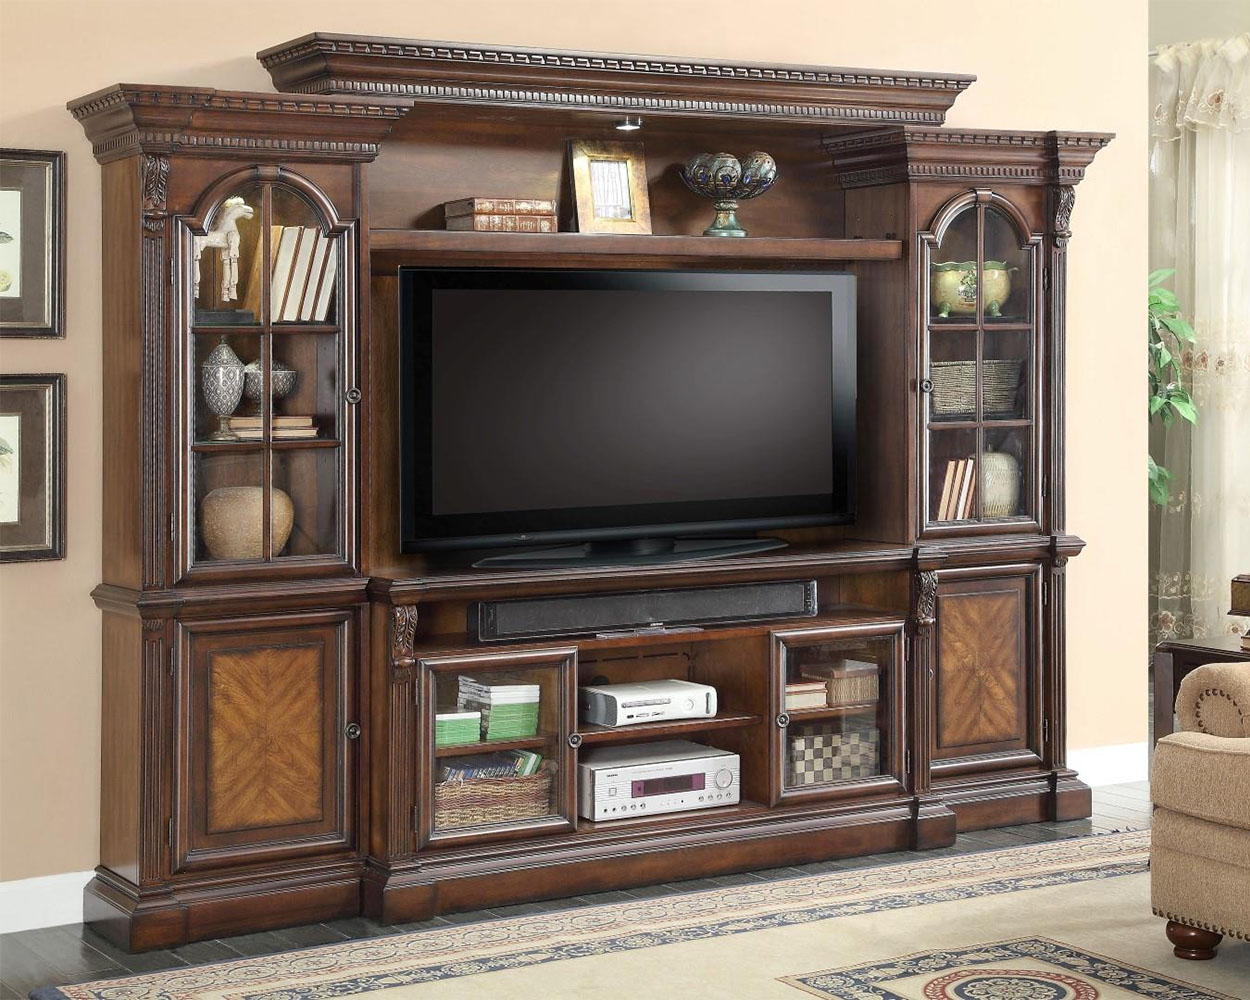 Entertainment Center Wall Unit Furniture